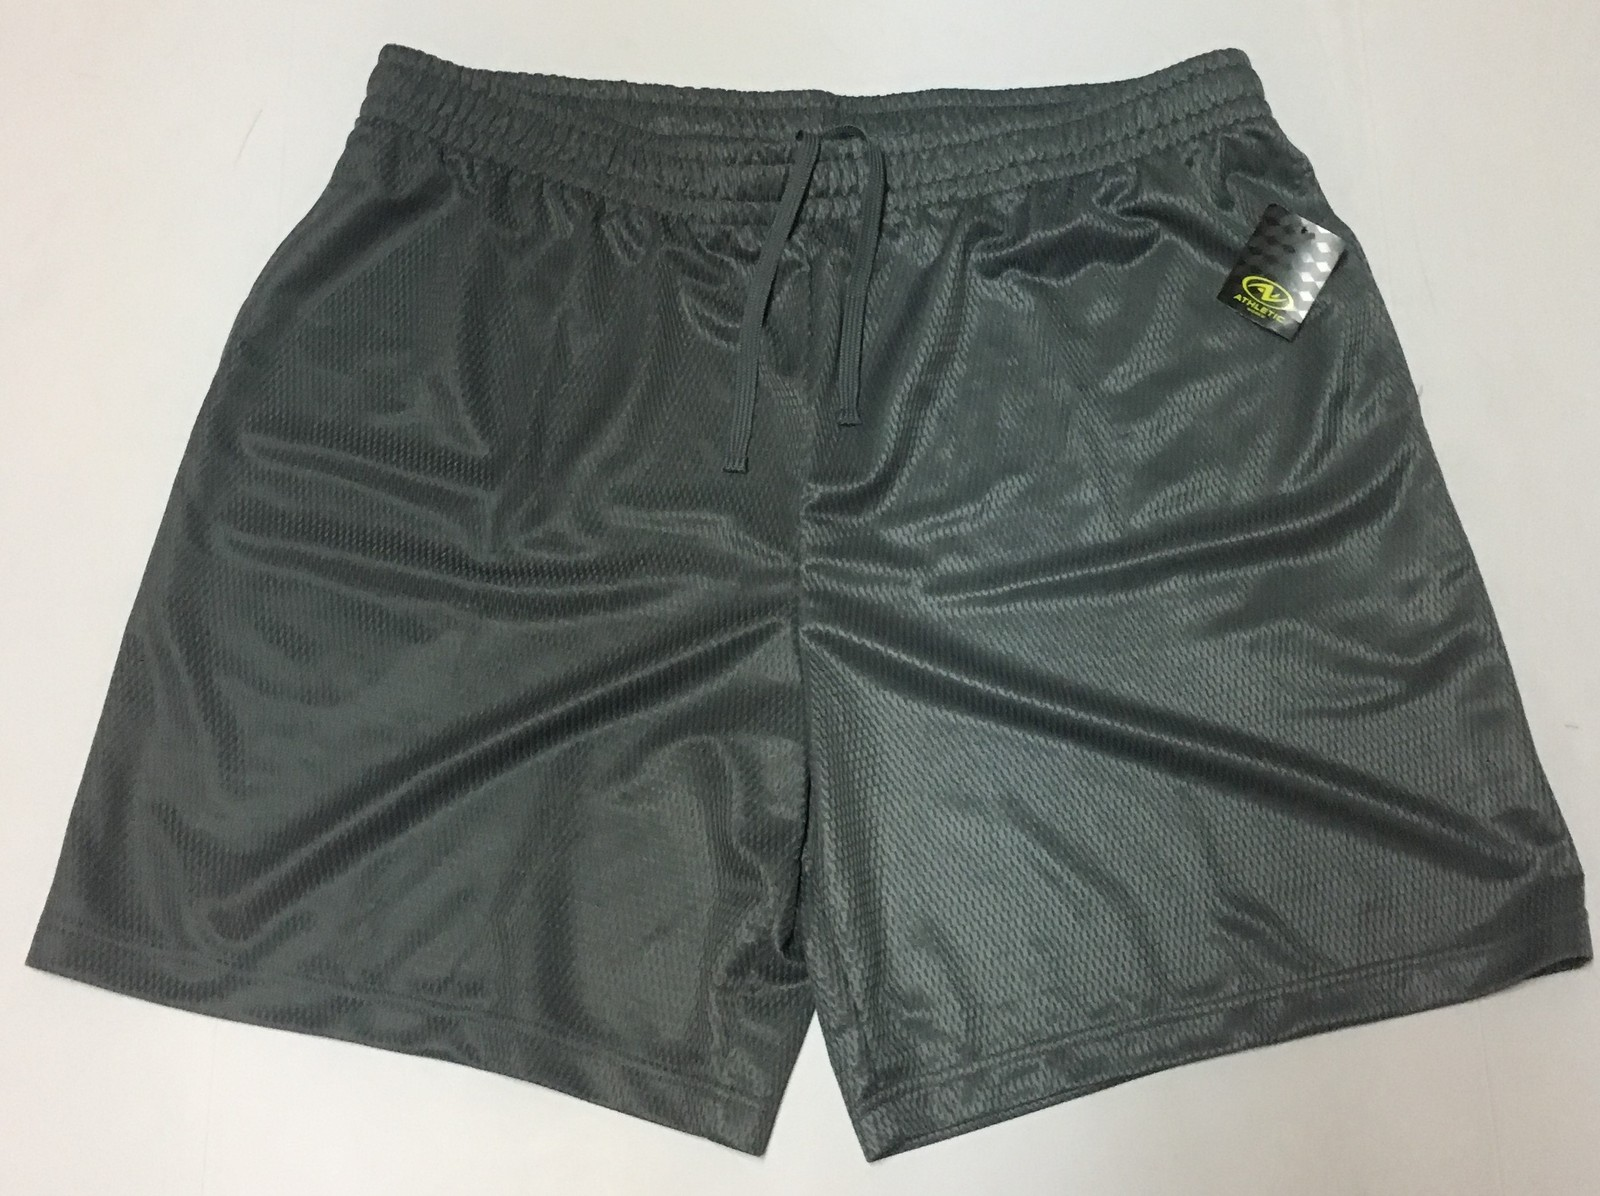 Athletic Works Active Shorts Men's XL (40/42) Gray DriWorks Moisture Wicking NWT